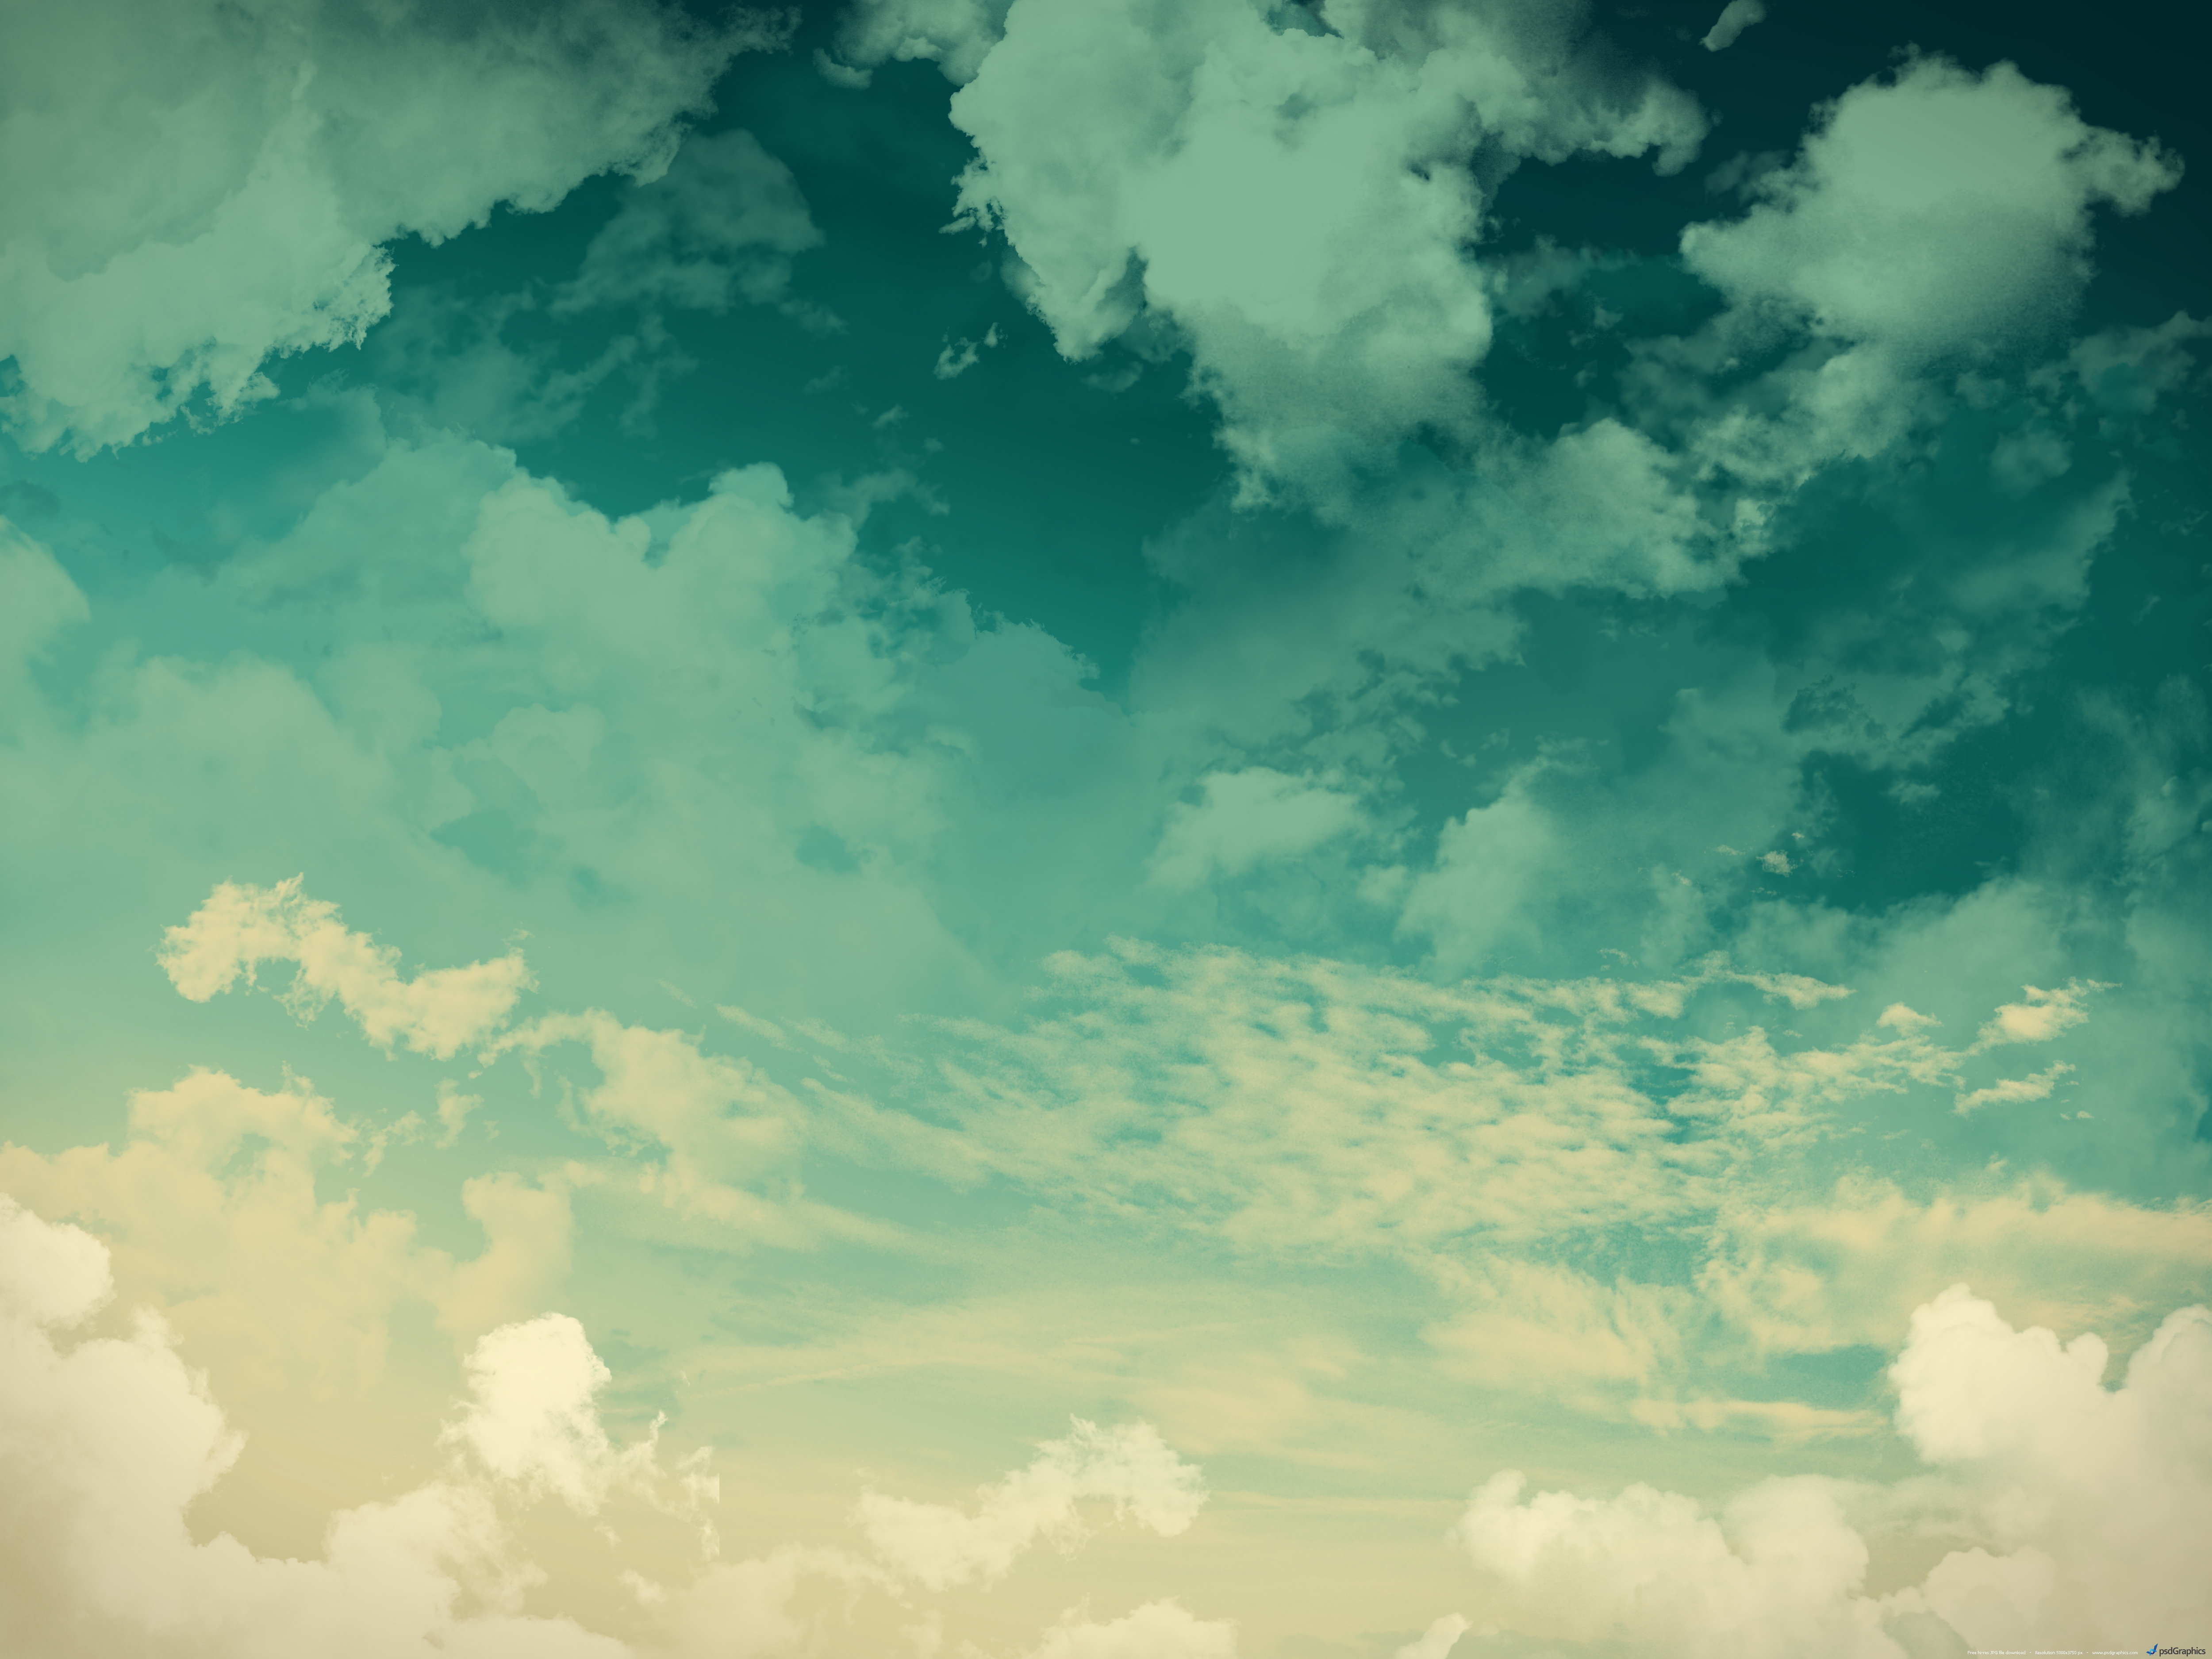 Grunge sky background, green clouds | PSDGraphics